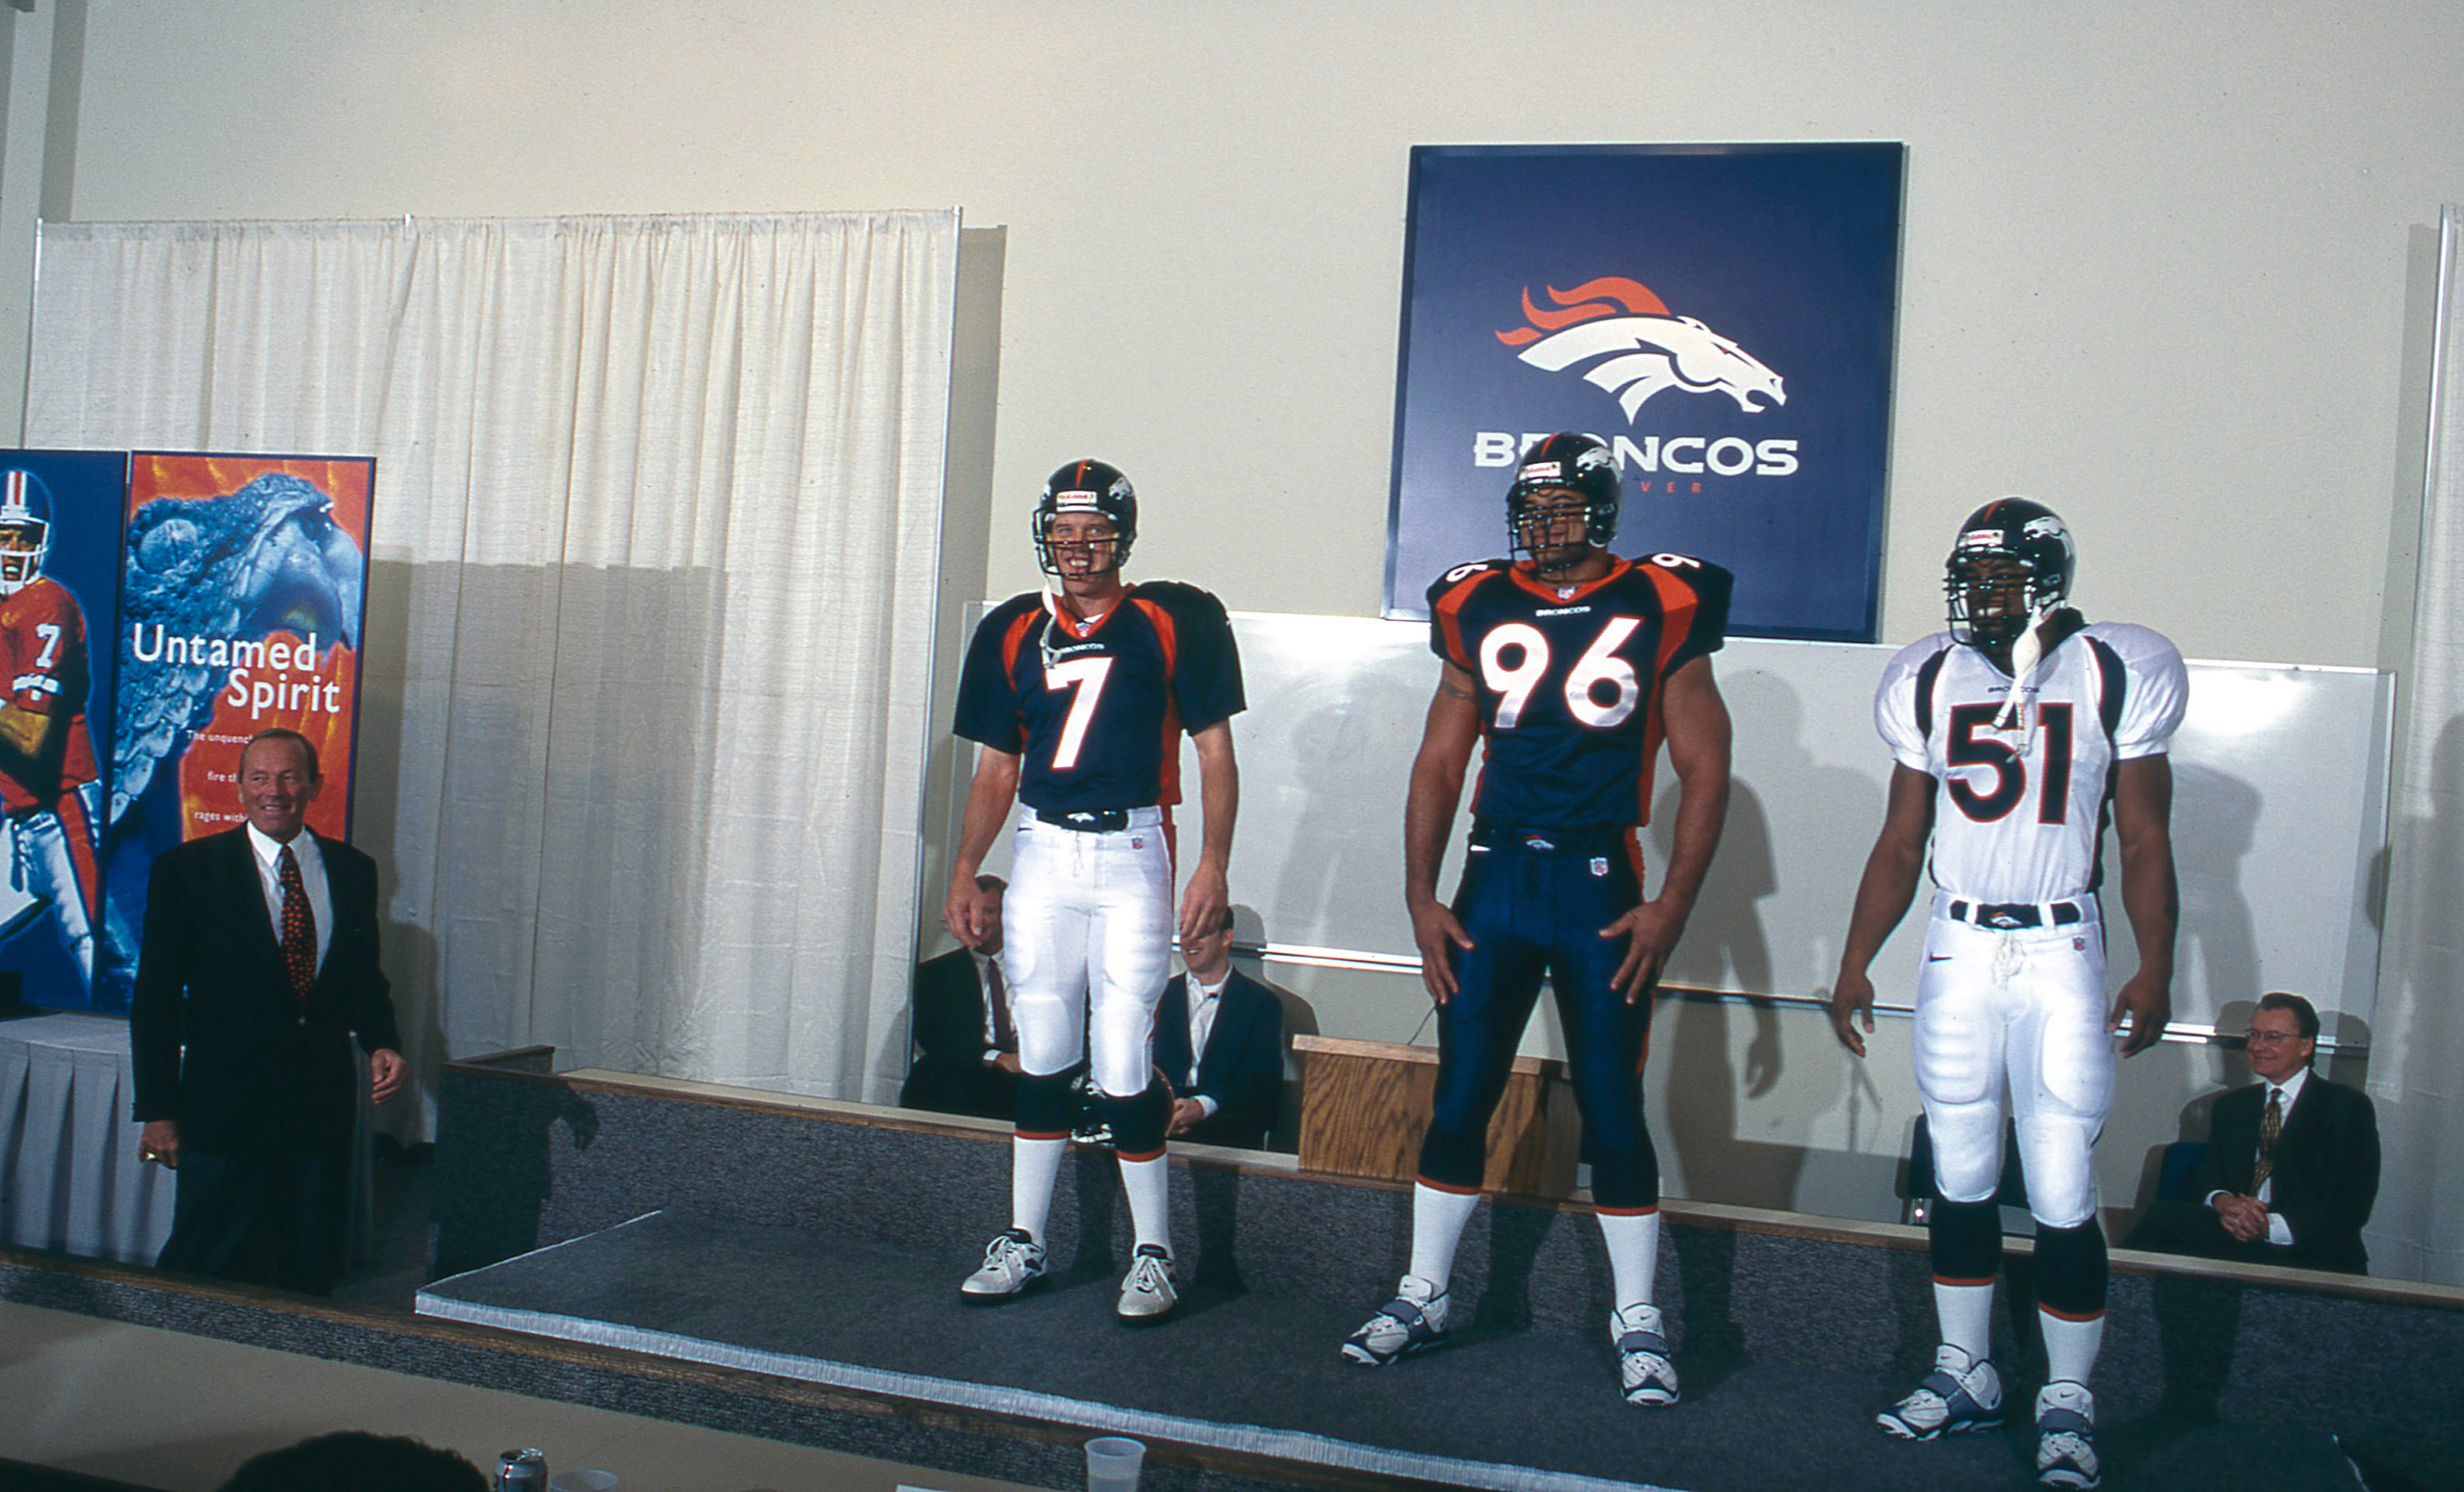 Broncos' new uniforms